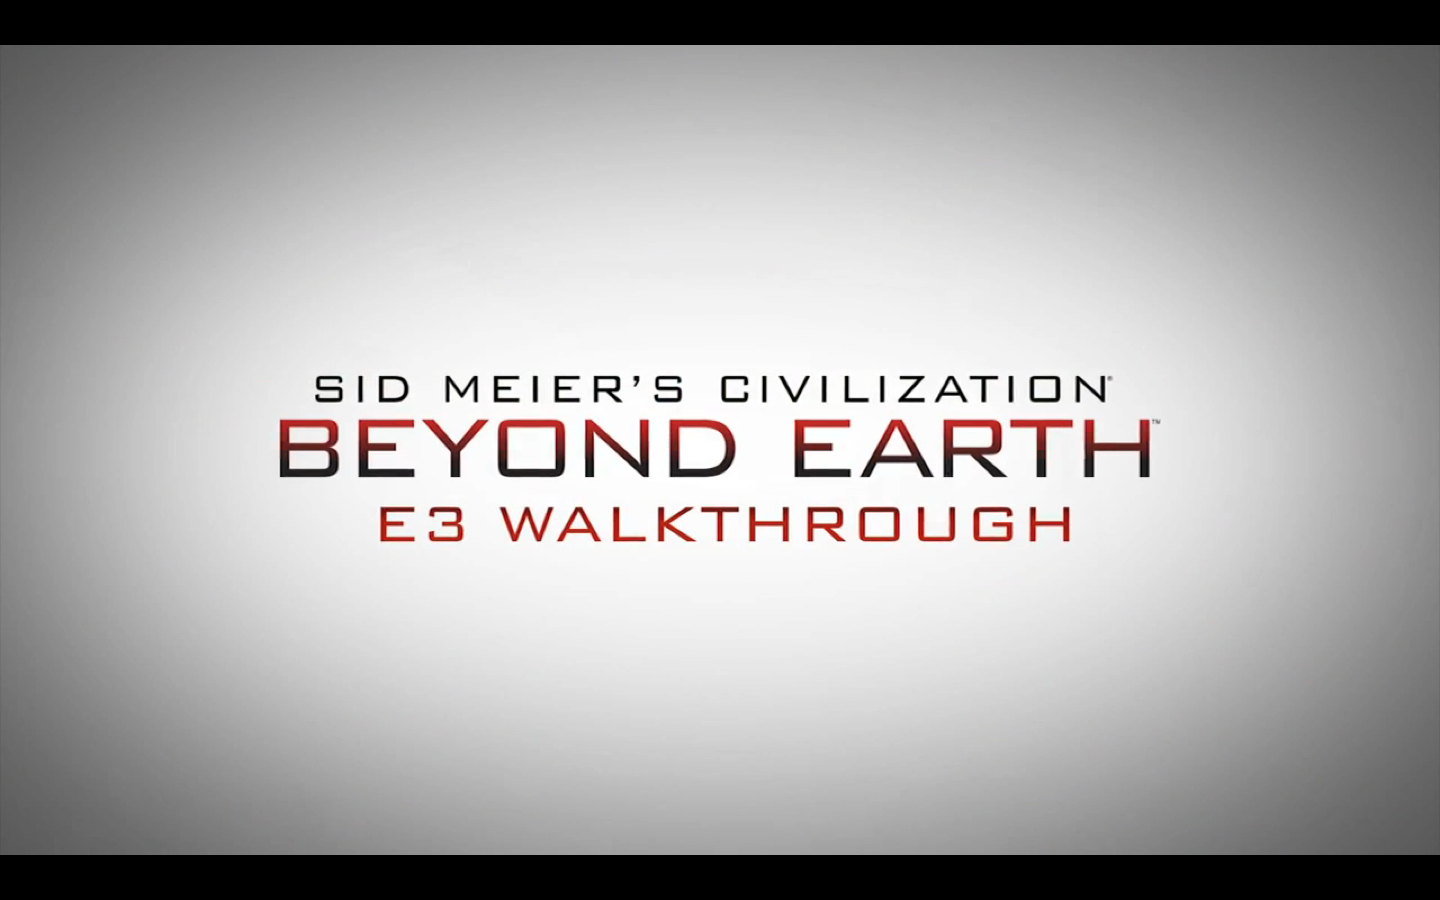 Firaxis Sid Meier Civilization E3 game coverage preview tutorial presents